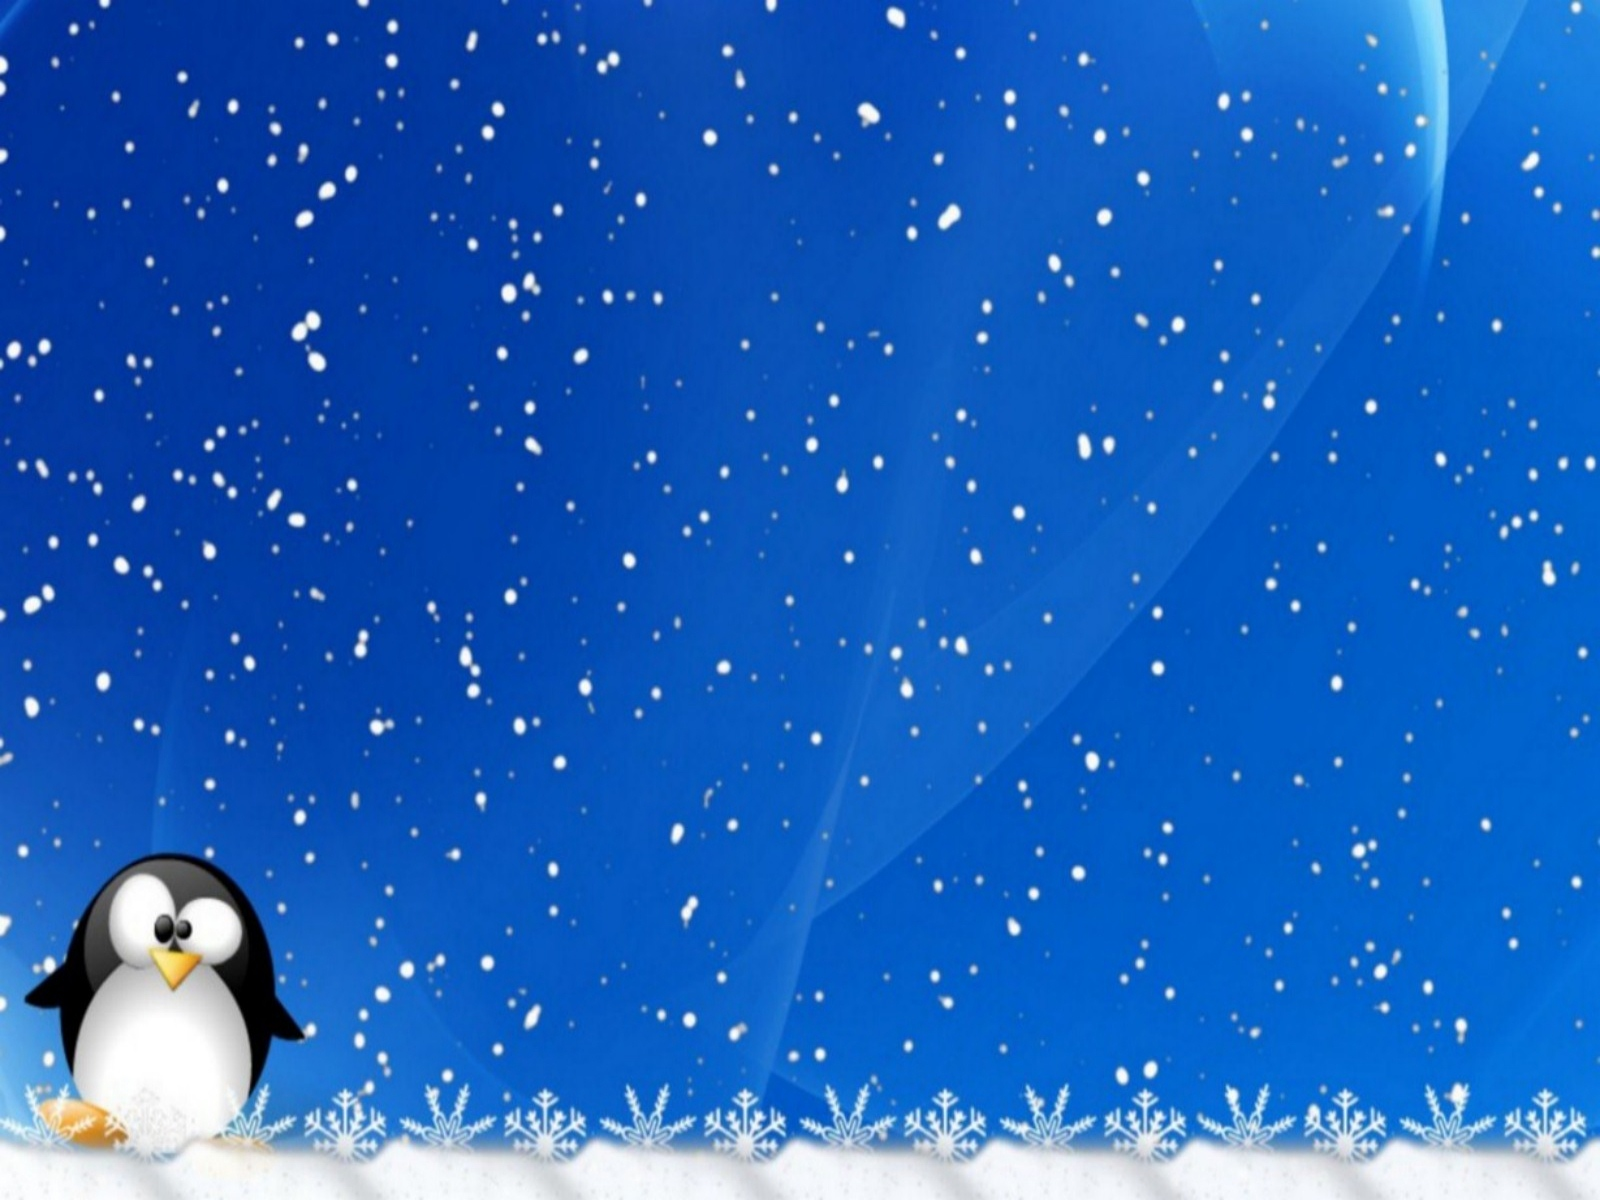 Winter Wallpaper Backgrounds 1600x1200